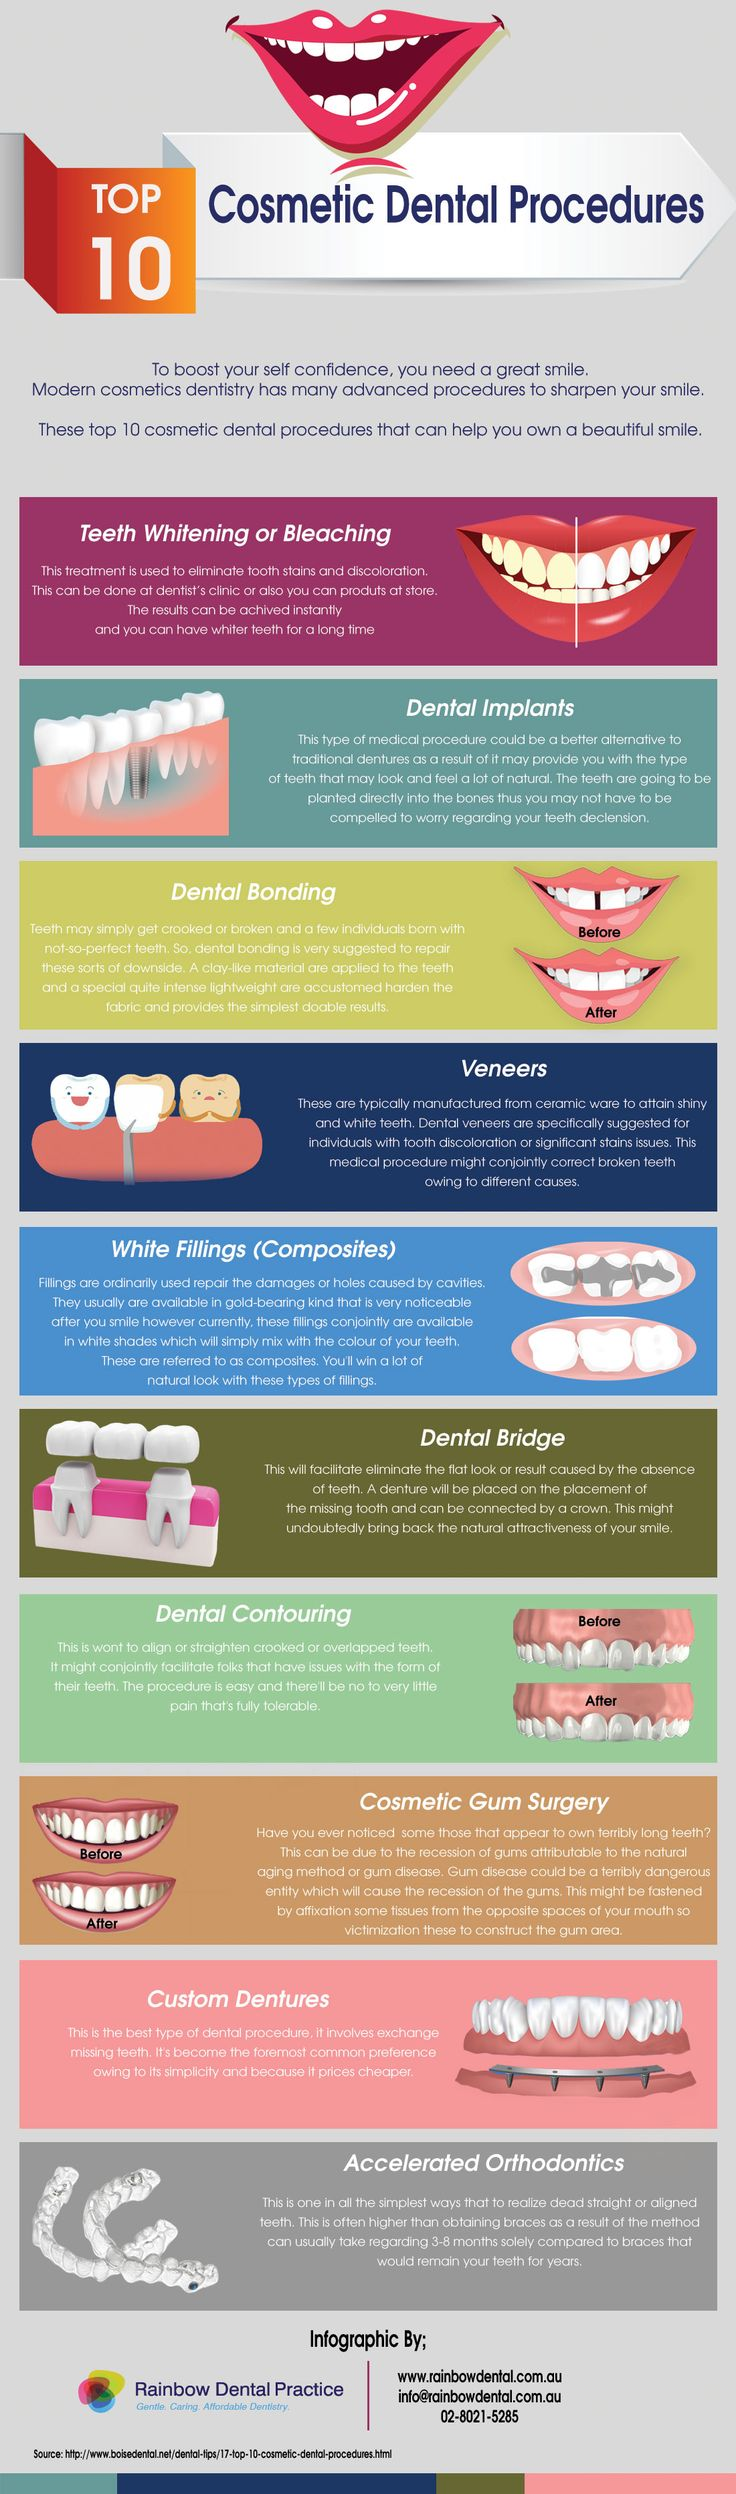 This #infographic shows top 10 foremost common cosmetic dental procedures that may assist you own that stunning smile.